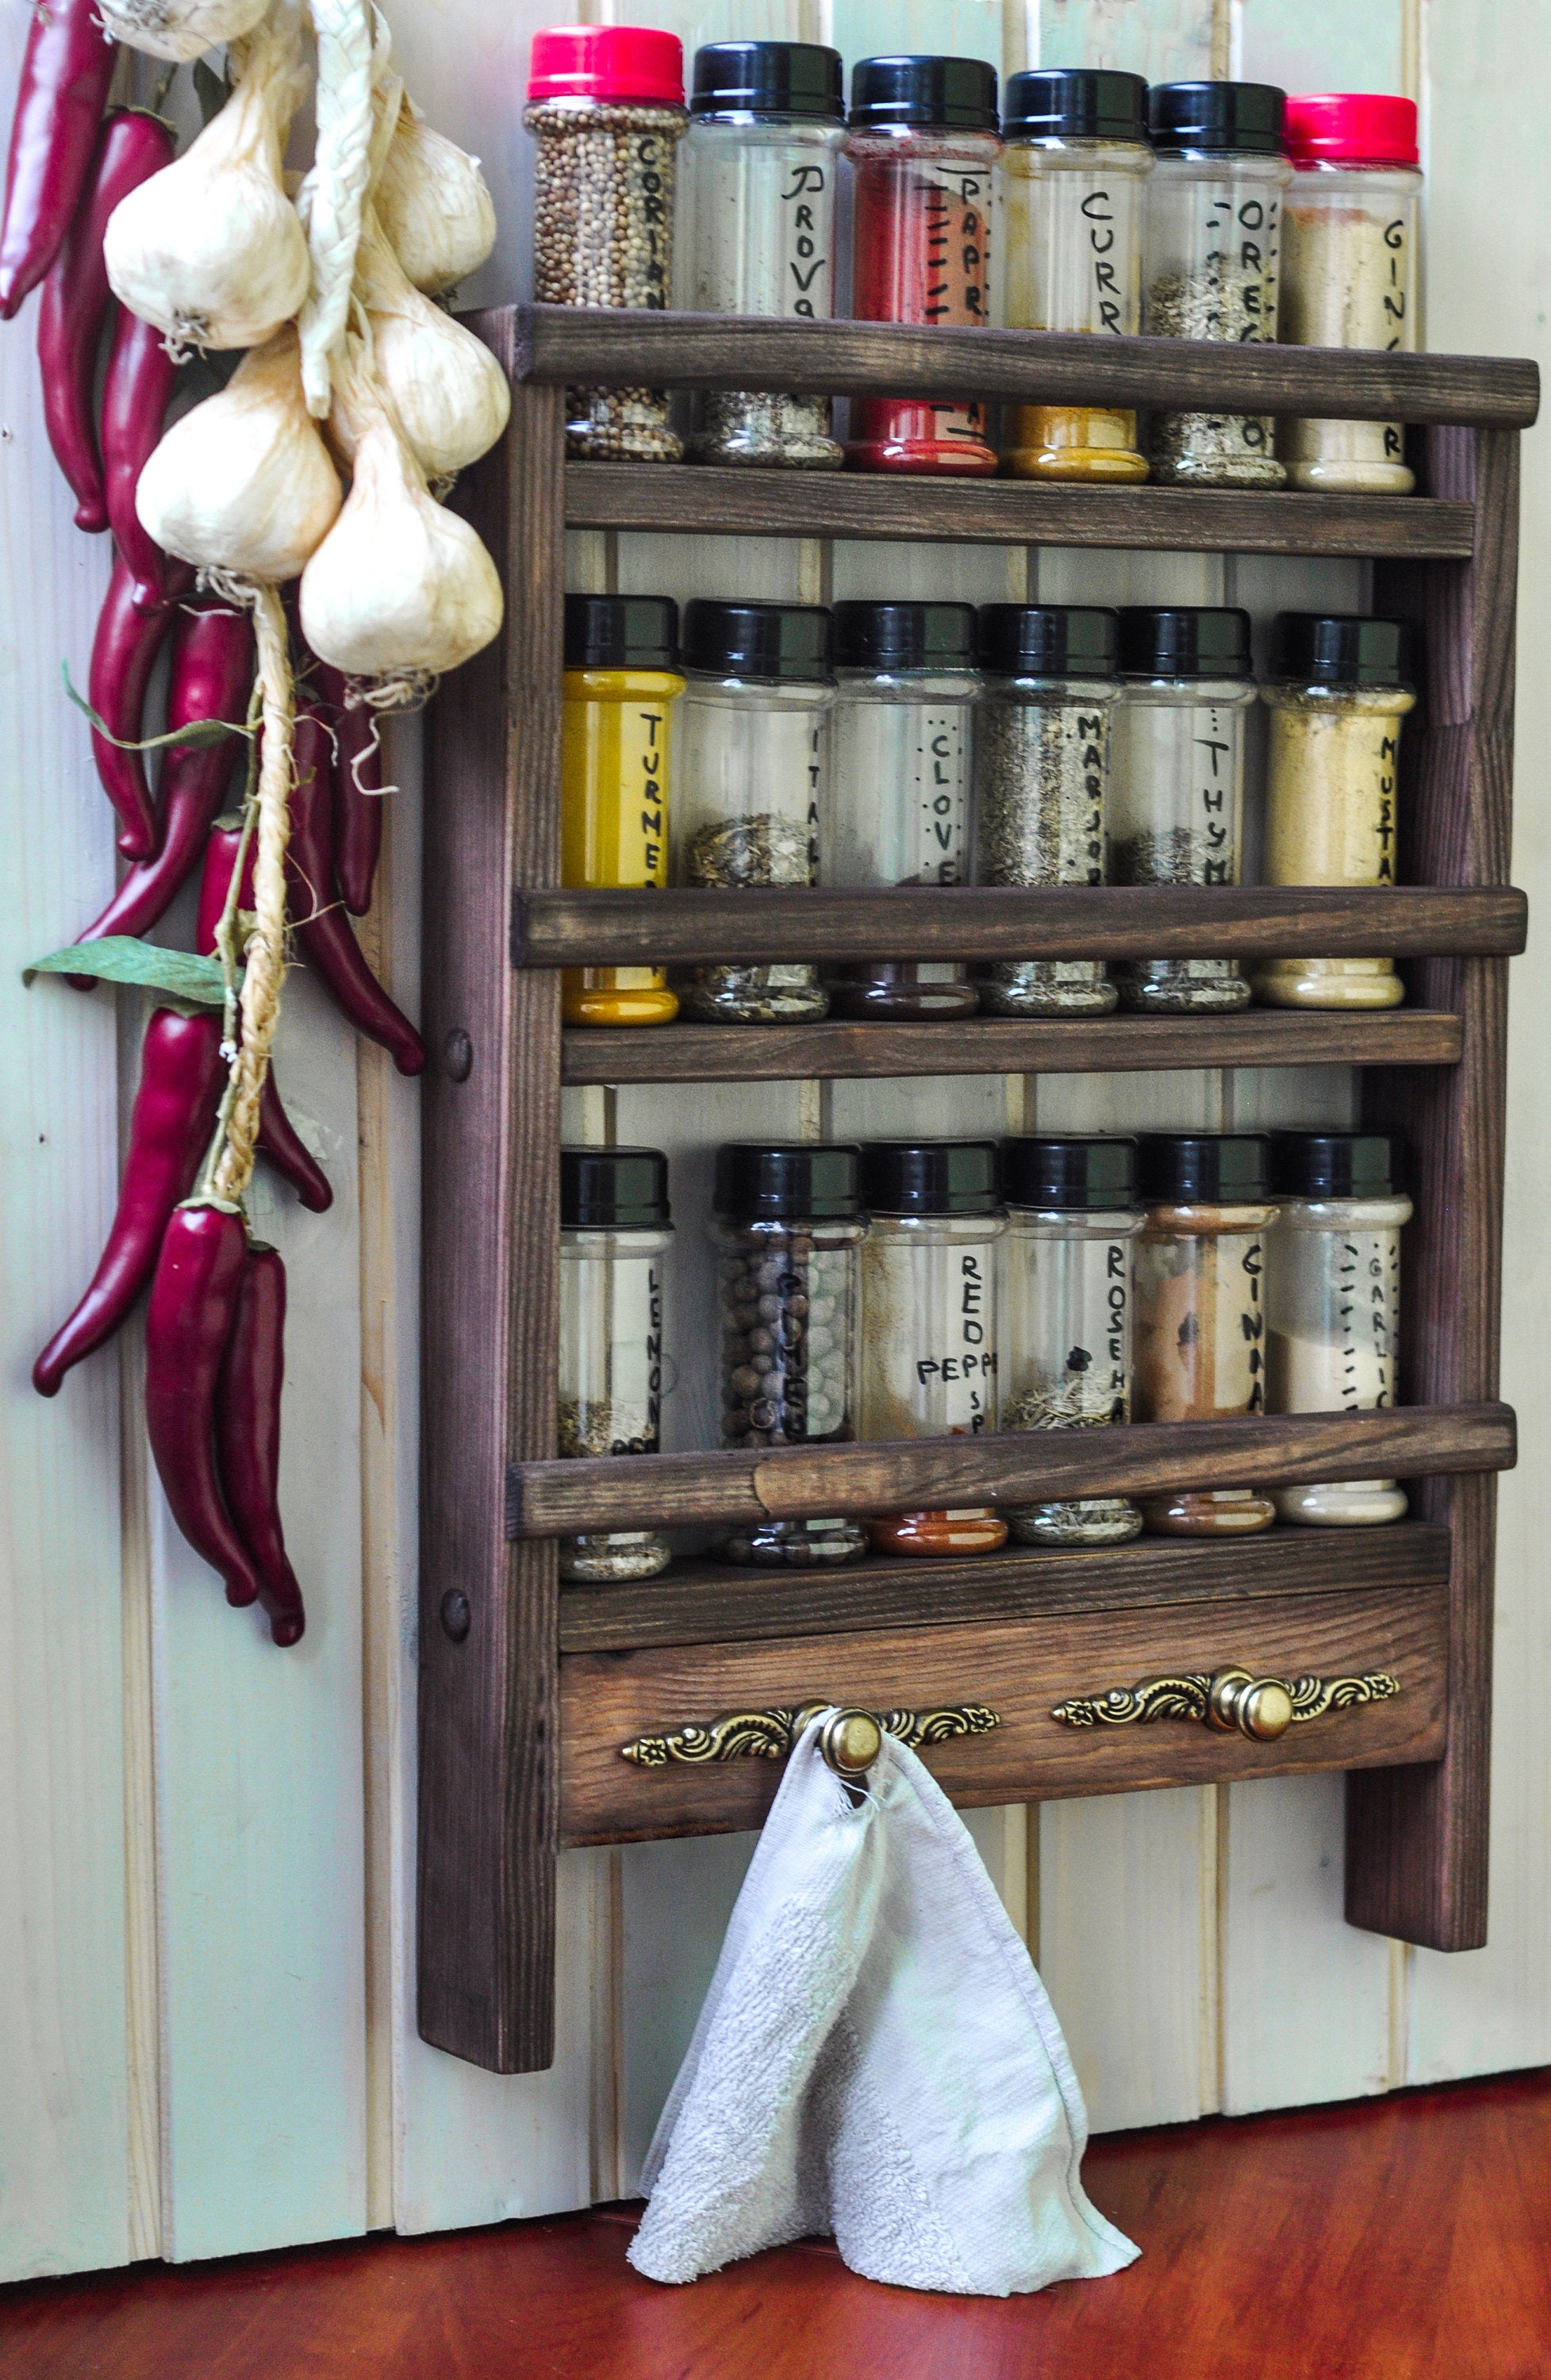 3-Shelf Spice Rack with Ornate Bars - LocalBeavers